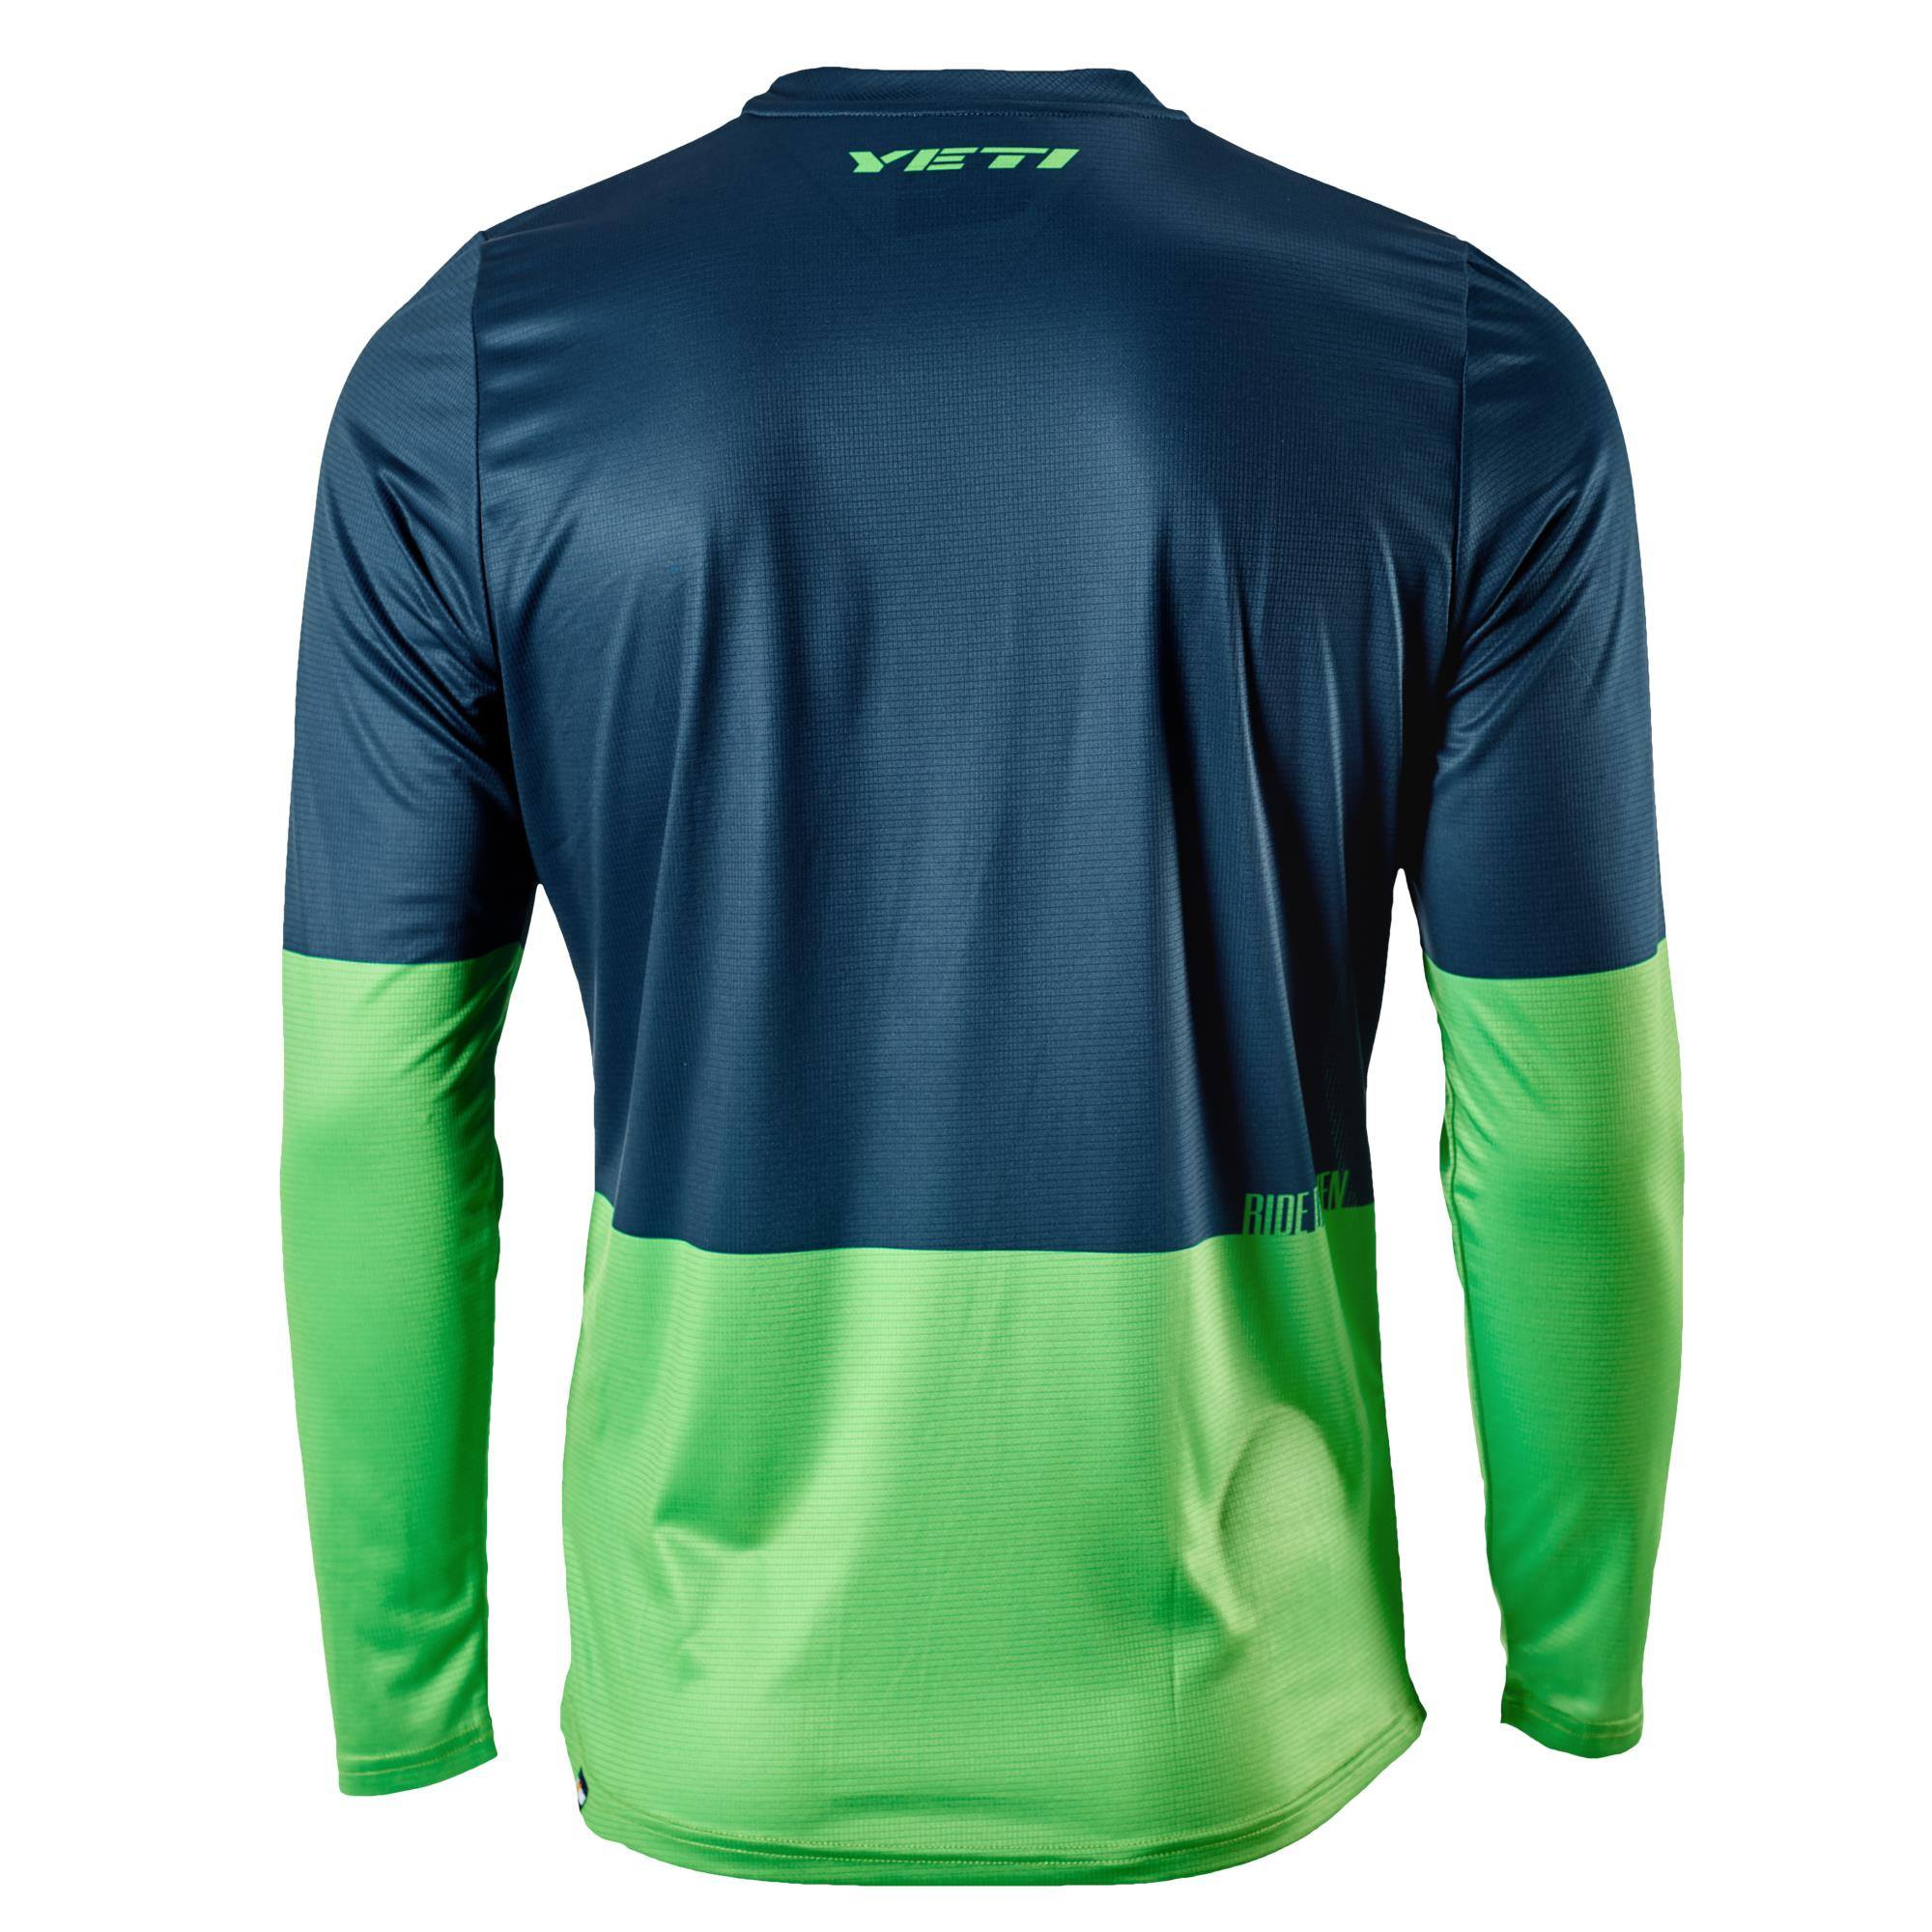 76ebab885 Yeti Alder Long Sleeve Jersey 2016. Bookmark and Share · Hover to zoom